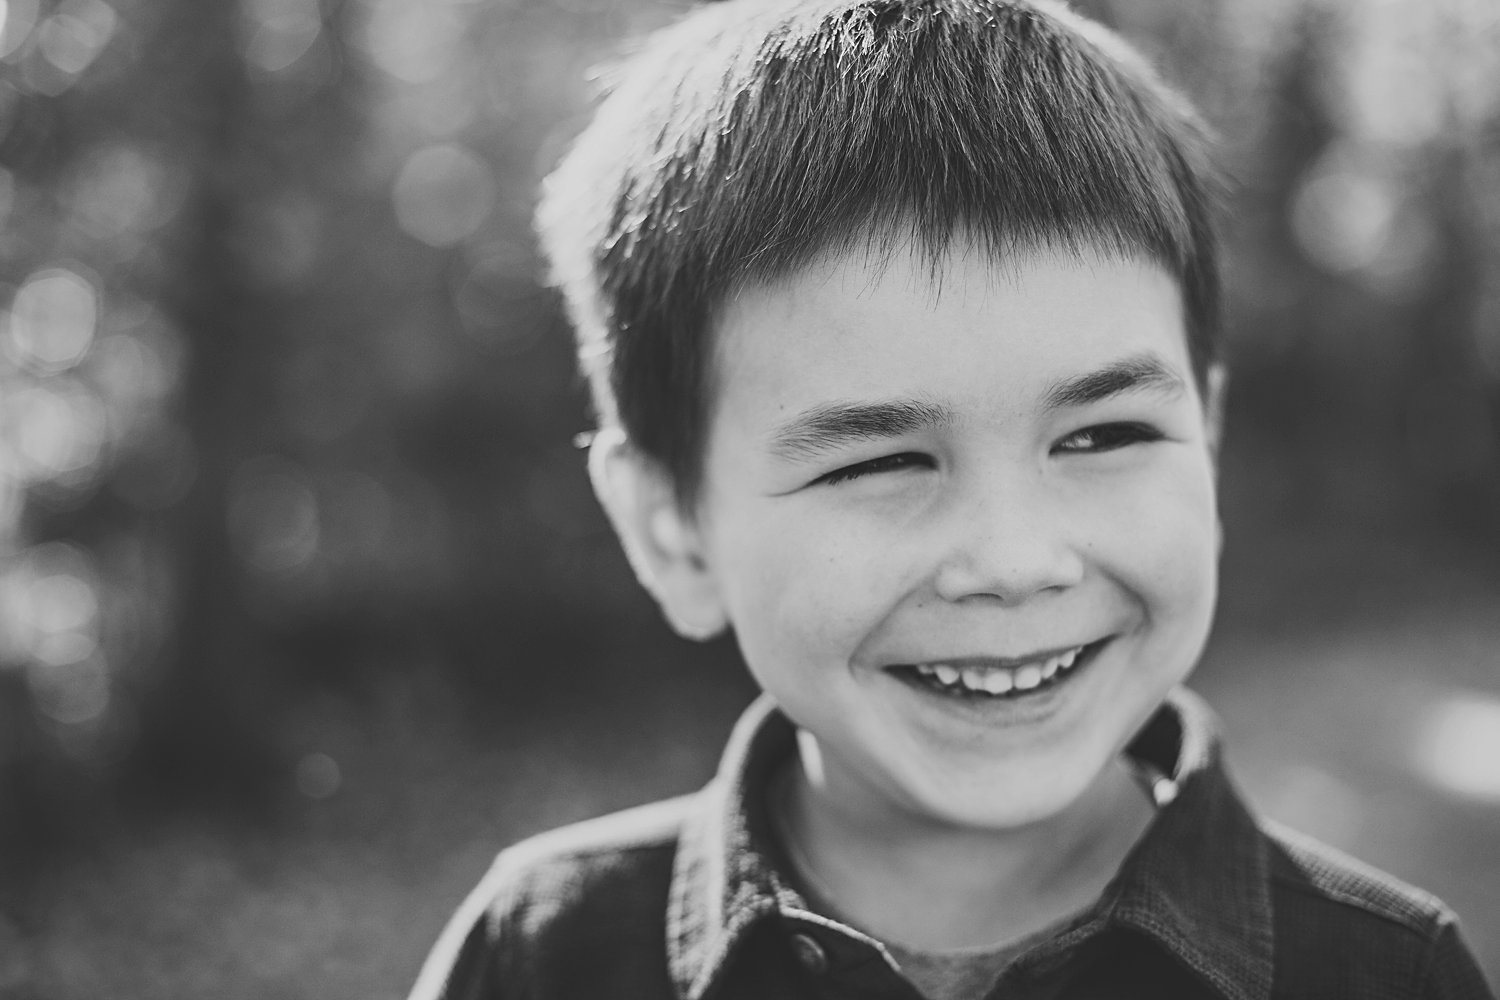 A young boy laughing